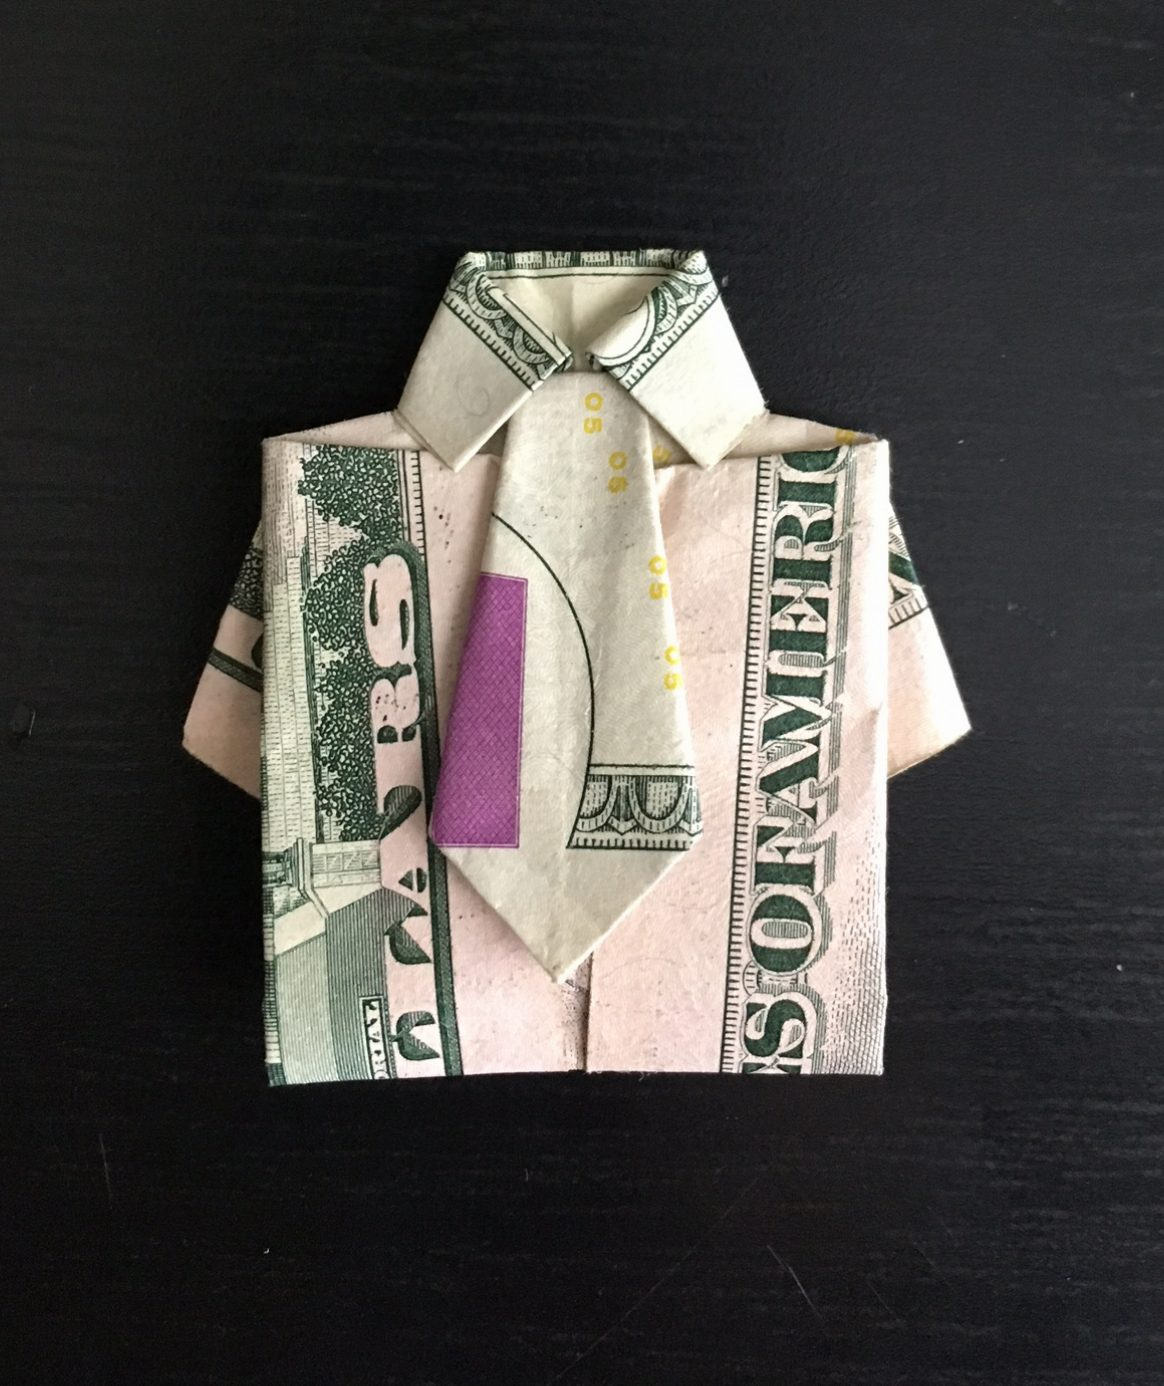 Dollar Bill Origami: Shirt & Tie – hobbybuilders - photo#6